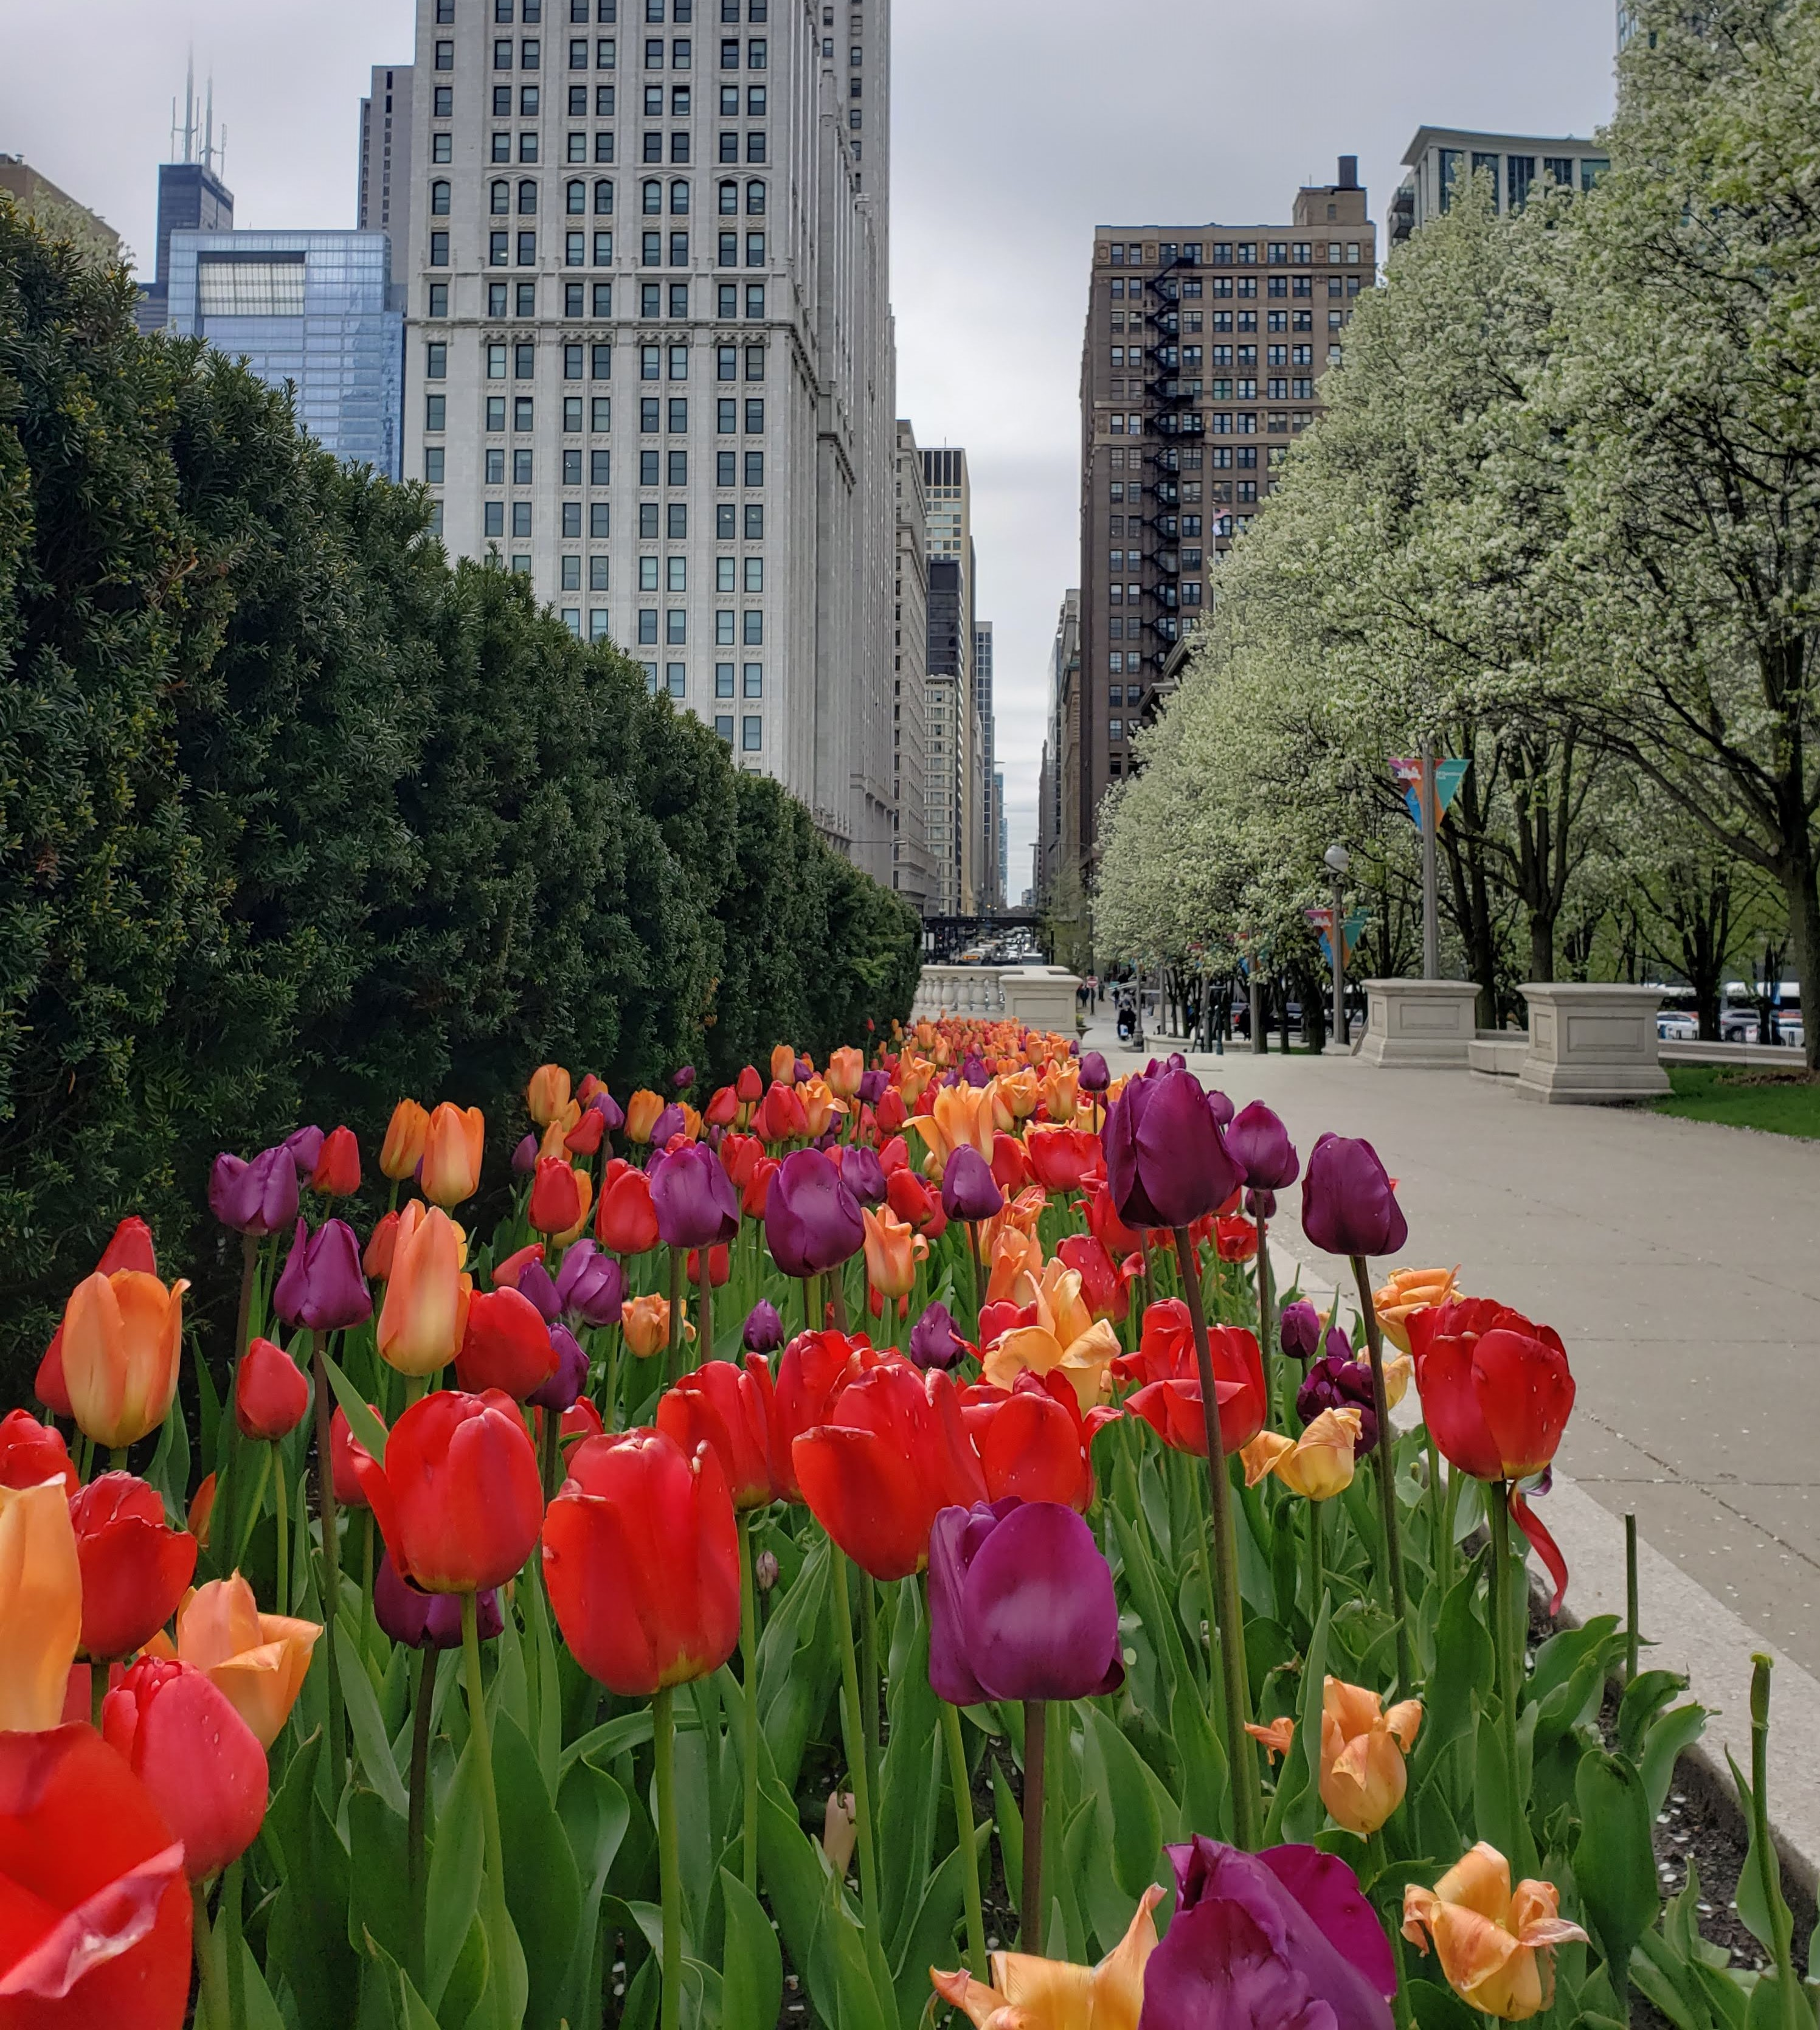 Tulips near Millennium Park during a cloudy Spring afternoon